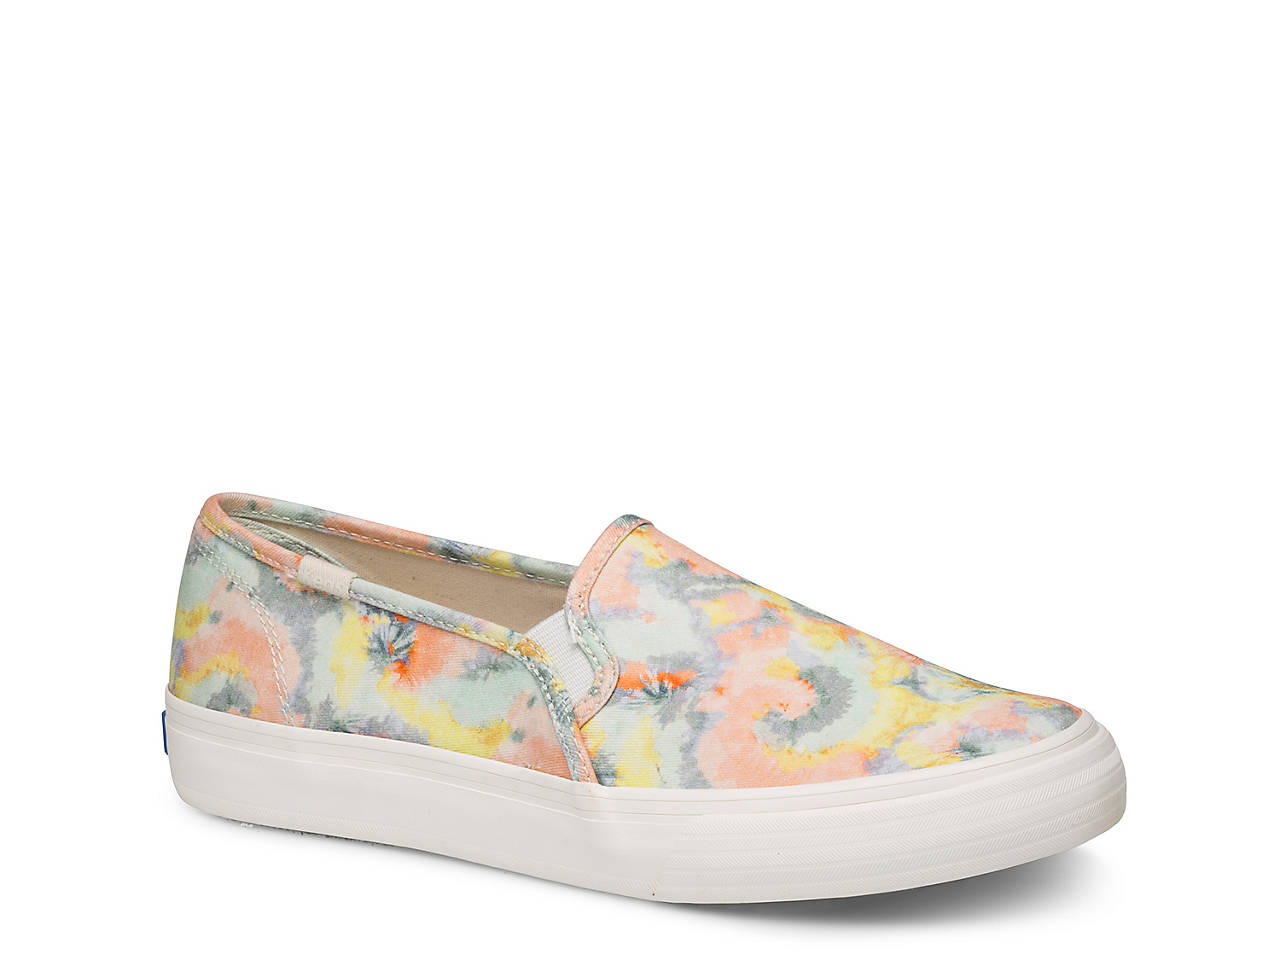 Double Decker Tie Dye Slip-On Sneaker - Women's